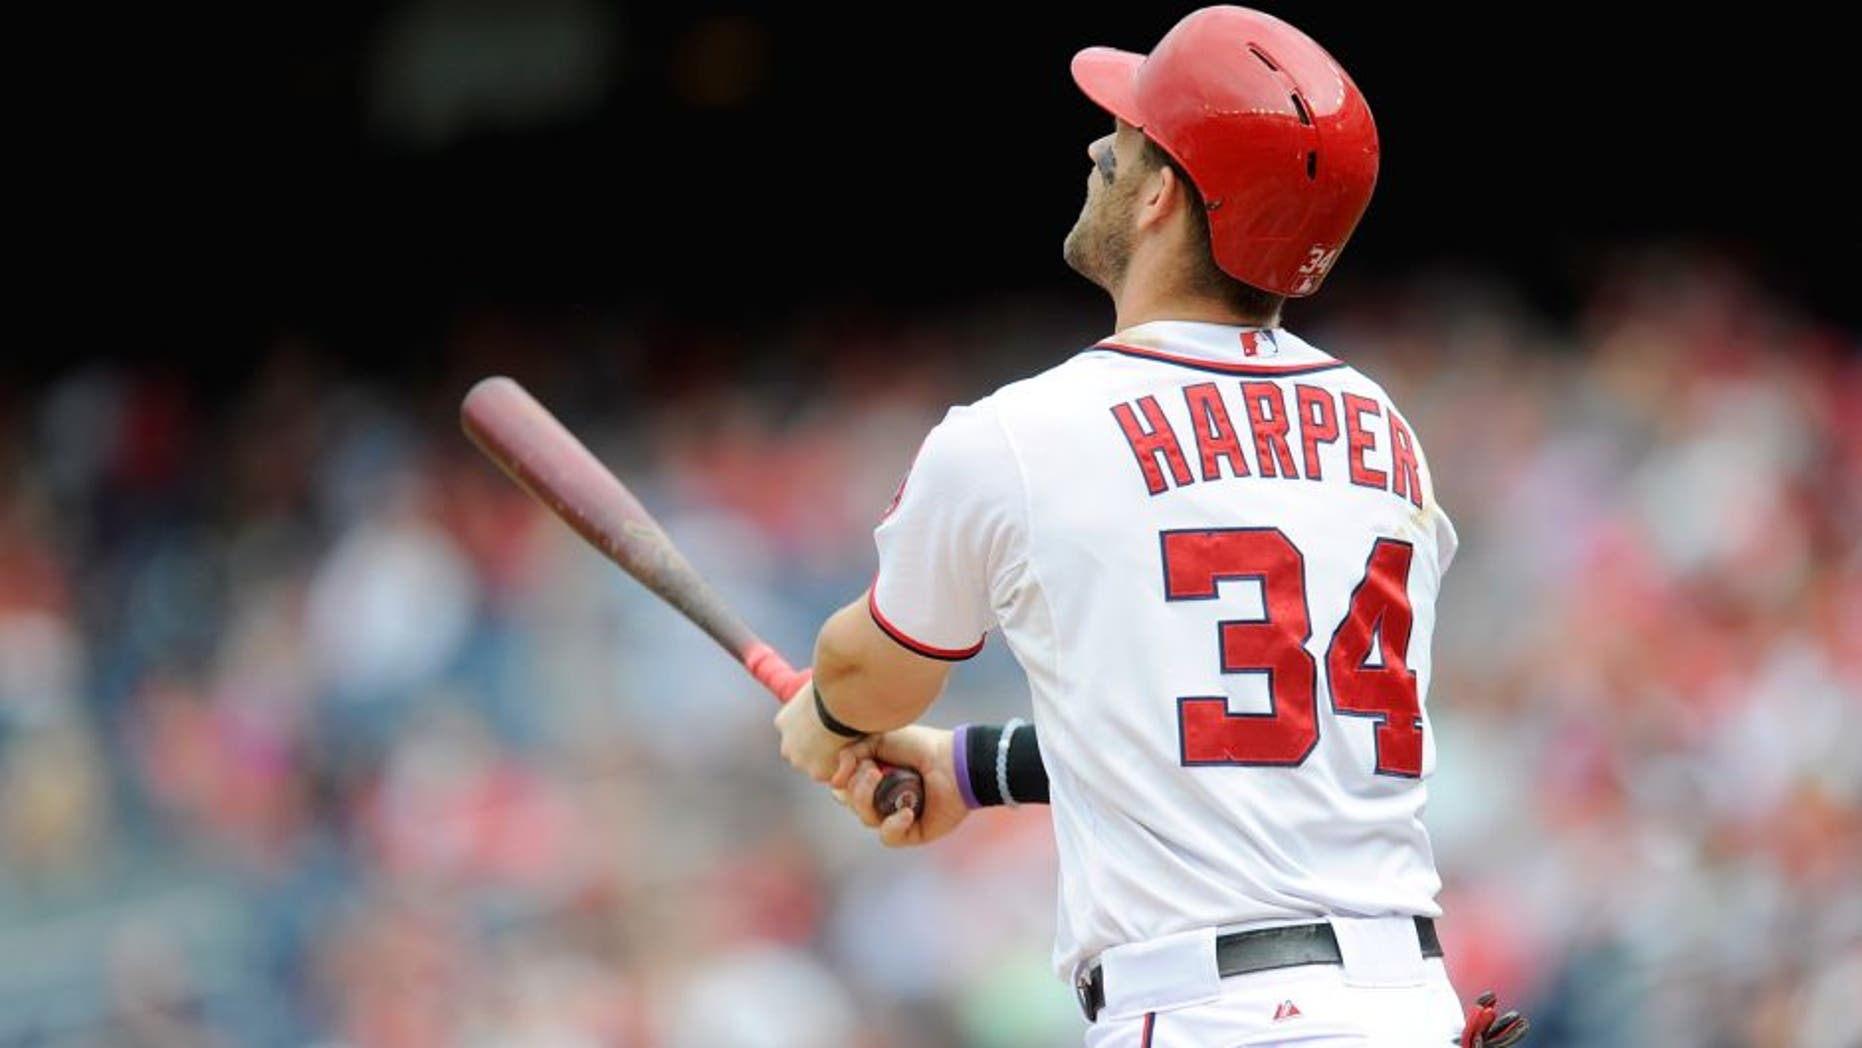 WASHINGTON, DC - SEPTEMBER 27: Bryce Harper #34 of the Washington Nationals bats against the Philadelphia Phillies at Nationals Park on September 27, 2015 in Washington, DC. (Photo by G Fiume/Getty Images)